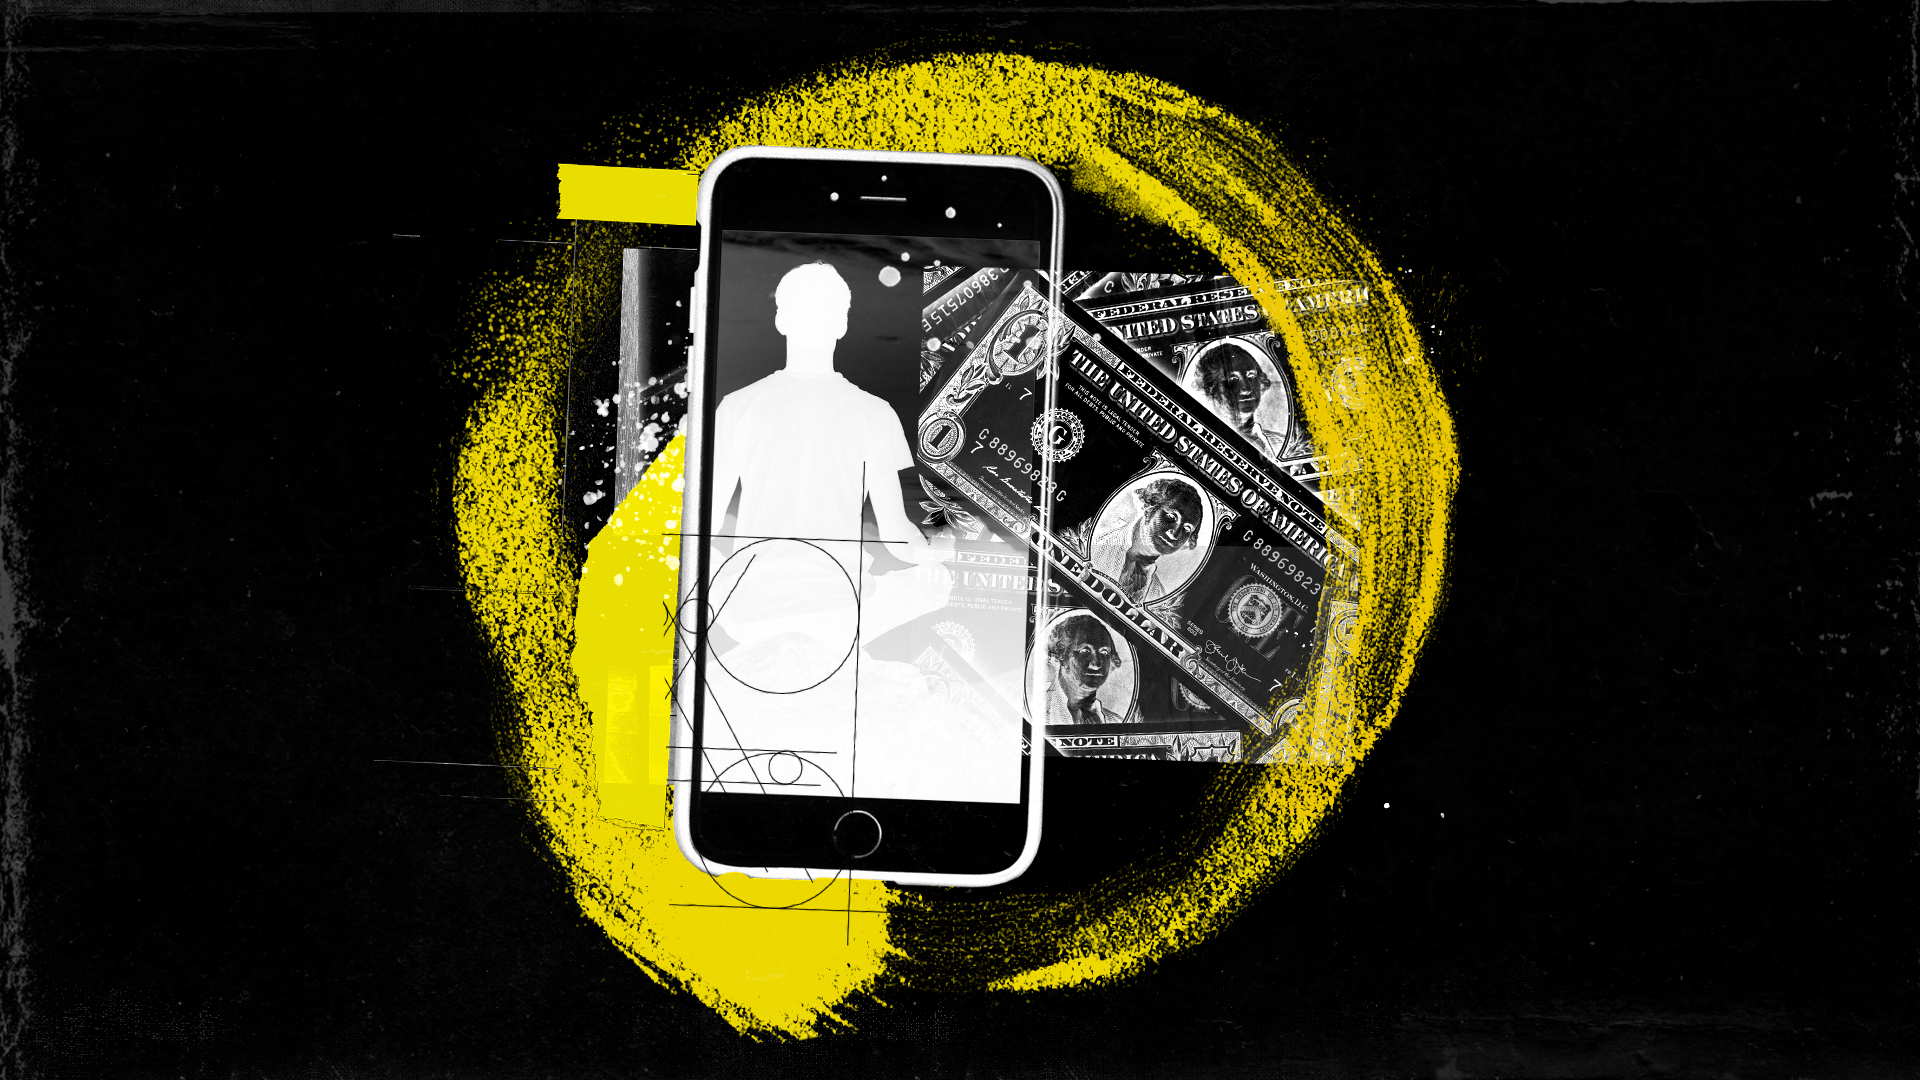 A collage of a smartphone showing a silhouette of a person meditating; dollars; and a highlighter.